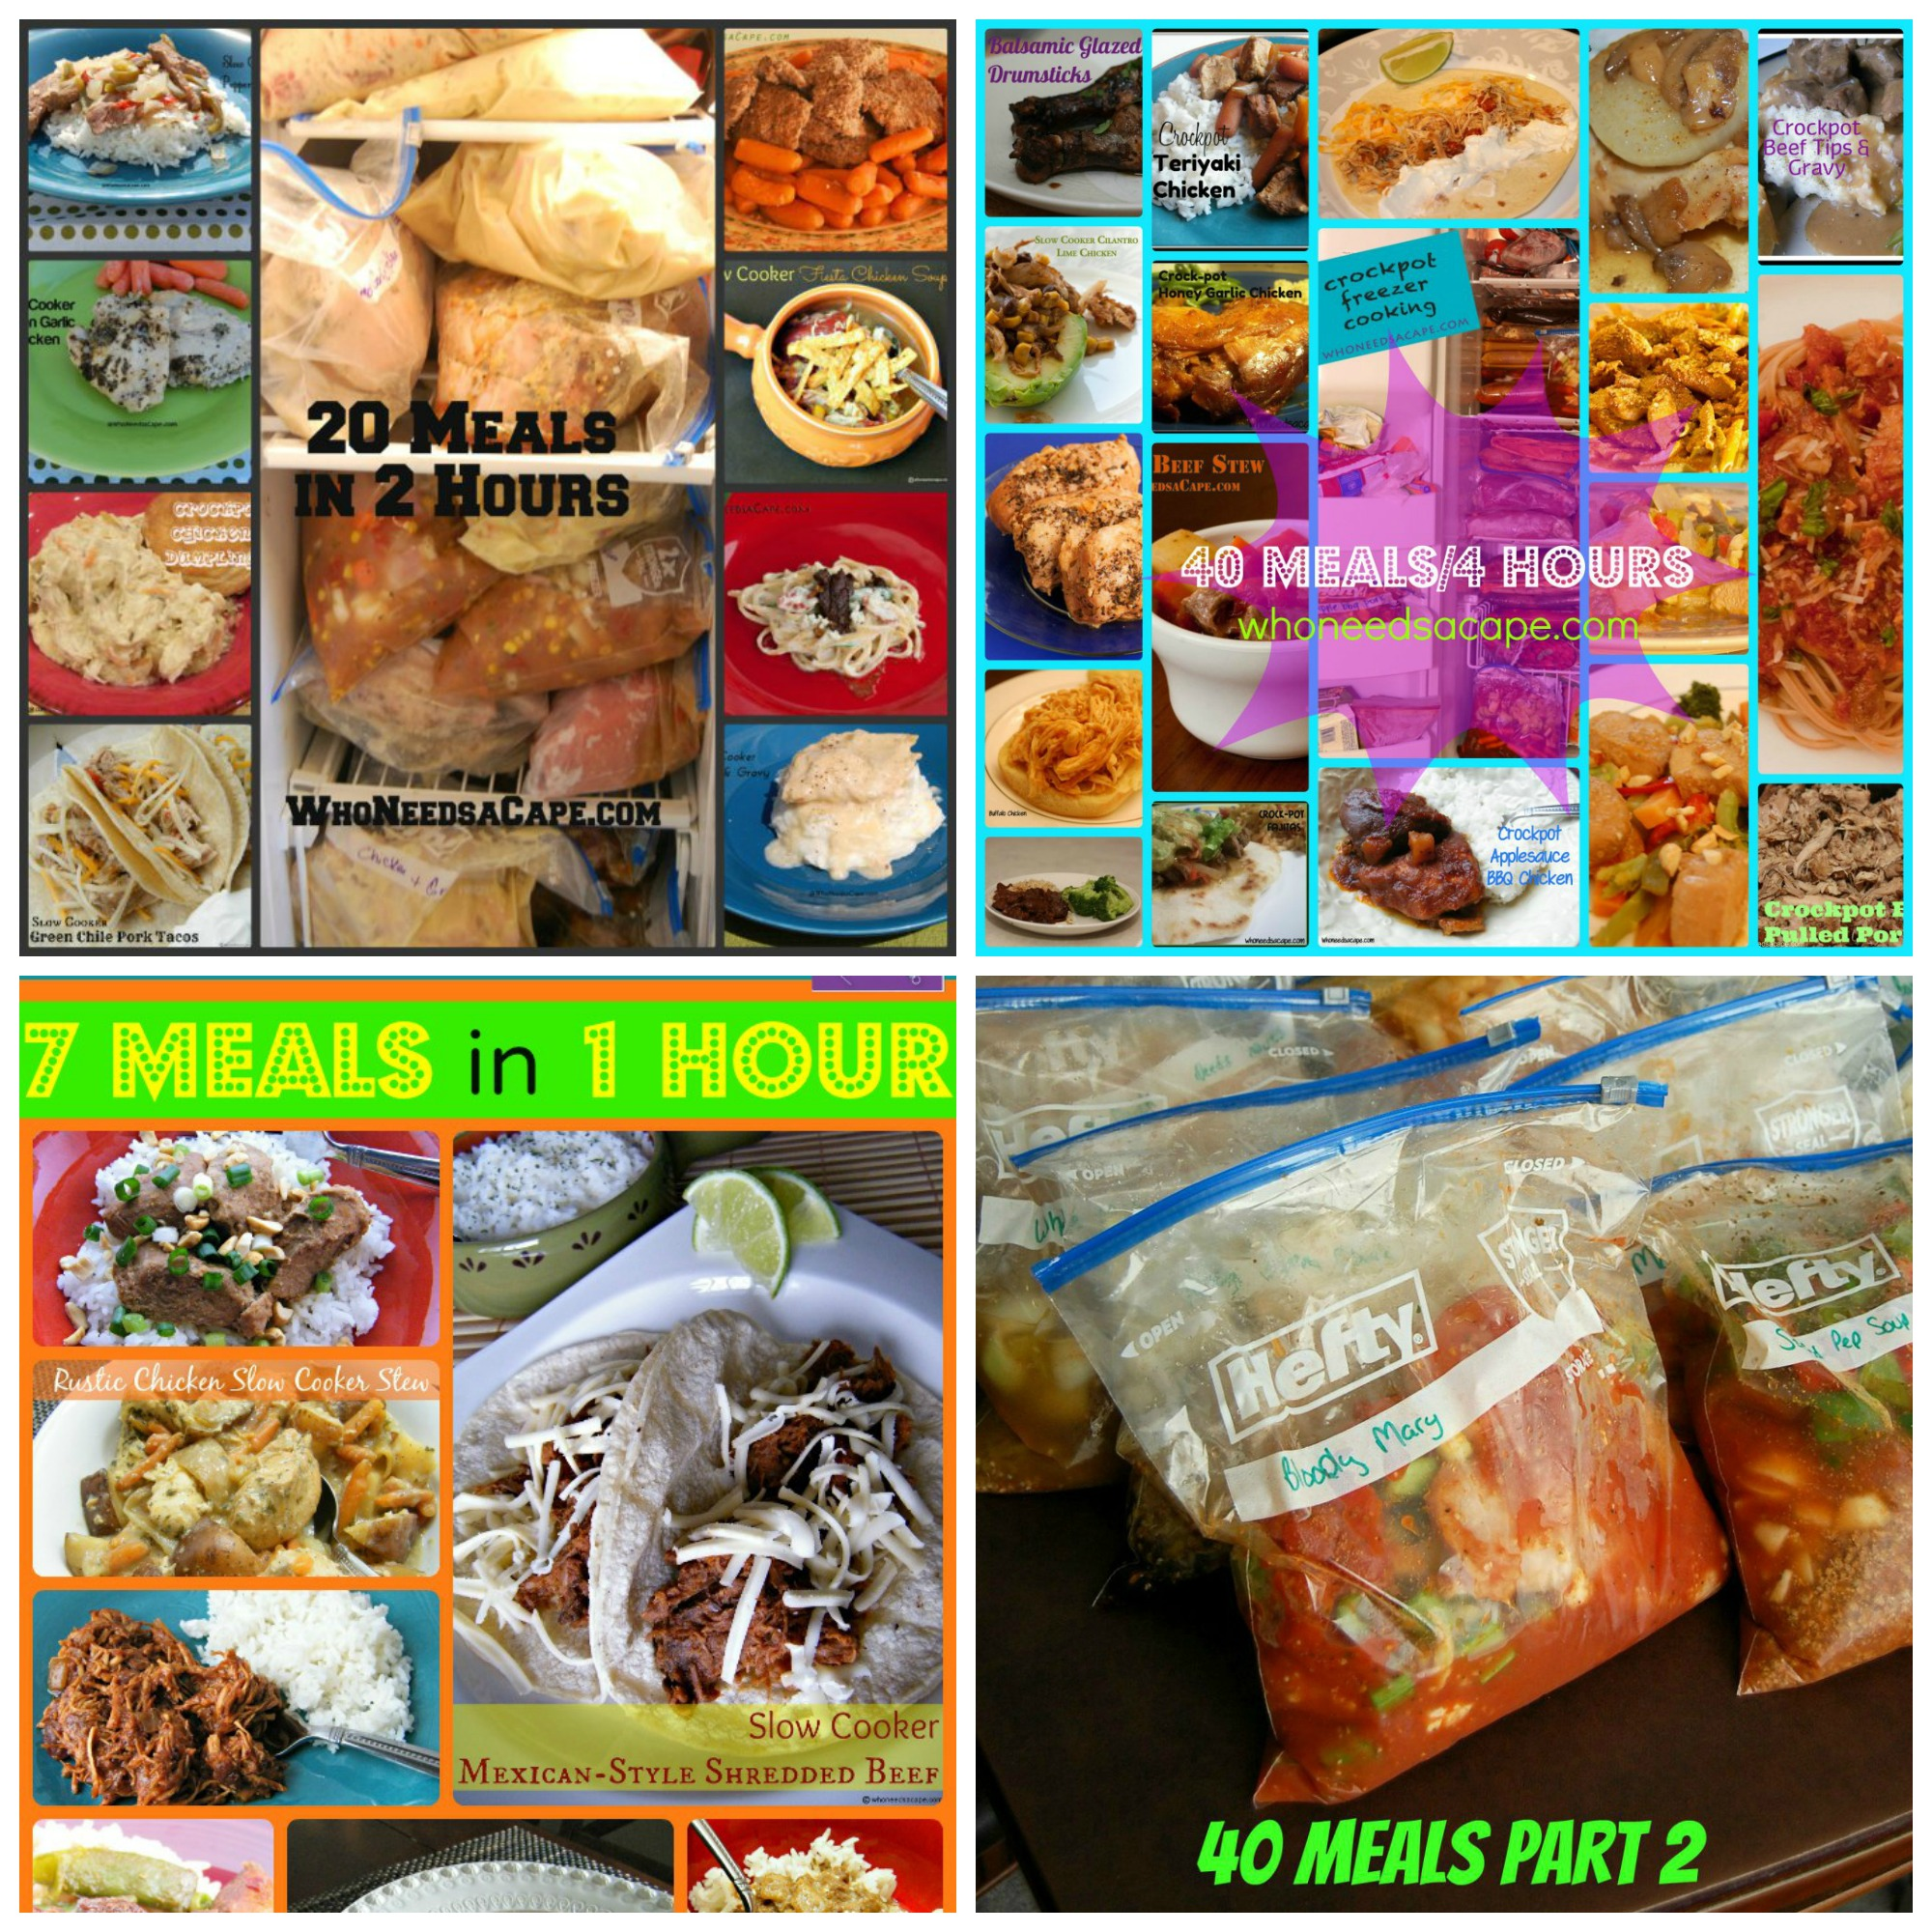 5 Different Freezer Meal Sets! 7 Meals, 20 Meals, 30 Meals and 2 separate 40 meals sets. All you need for a year of slow cooking